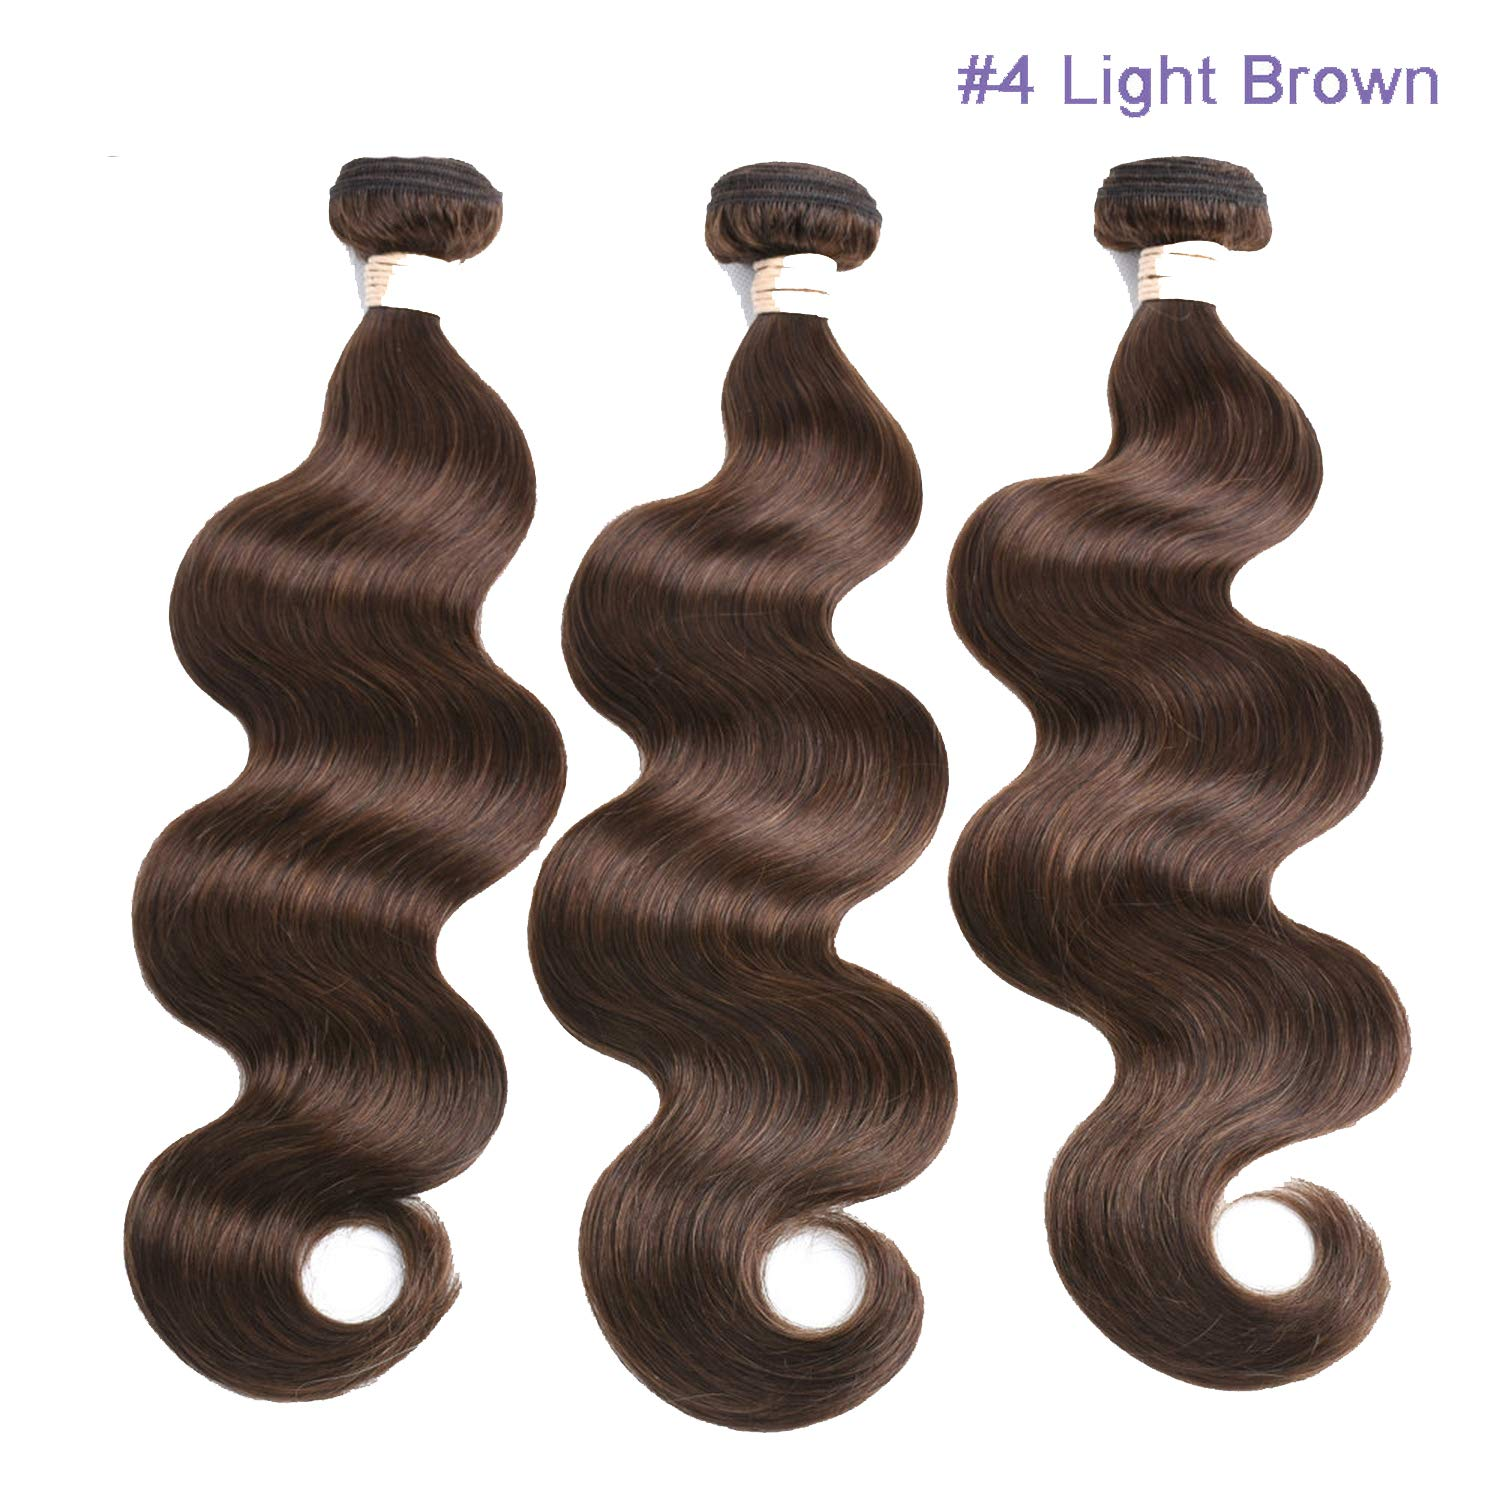 Amazon.com : Pre-Colored Human Hair Weave Body Wave Natural Black Colored  Medium Brown Hair Weaving, 16 16 18, #4 : Beauty